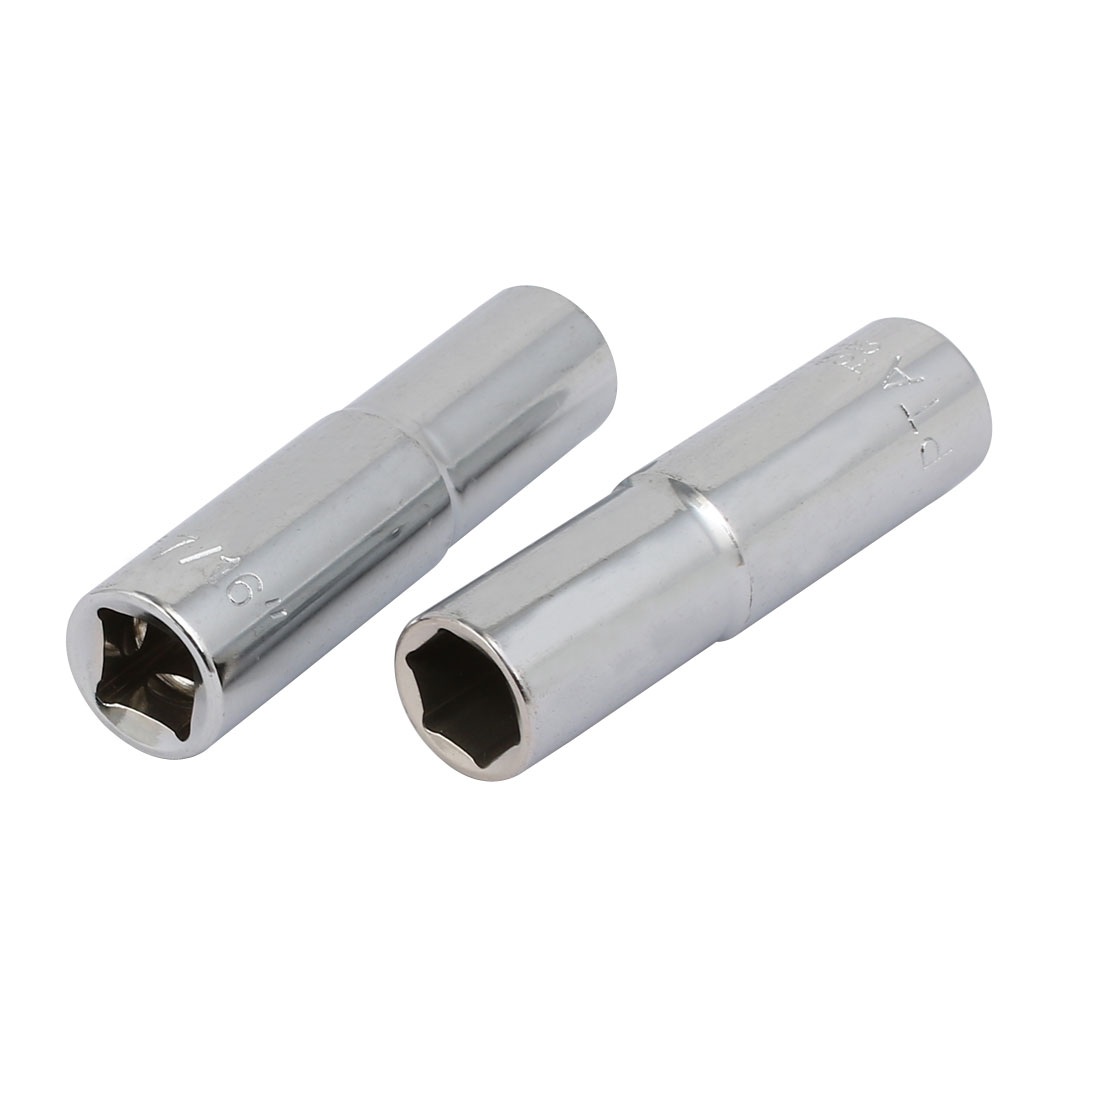 3/8-inch Square Drive 7/16-inch 6 Point Impact Socket CR-V Steel 2pcs